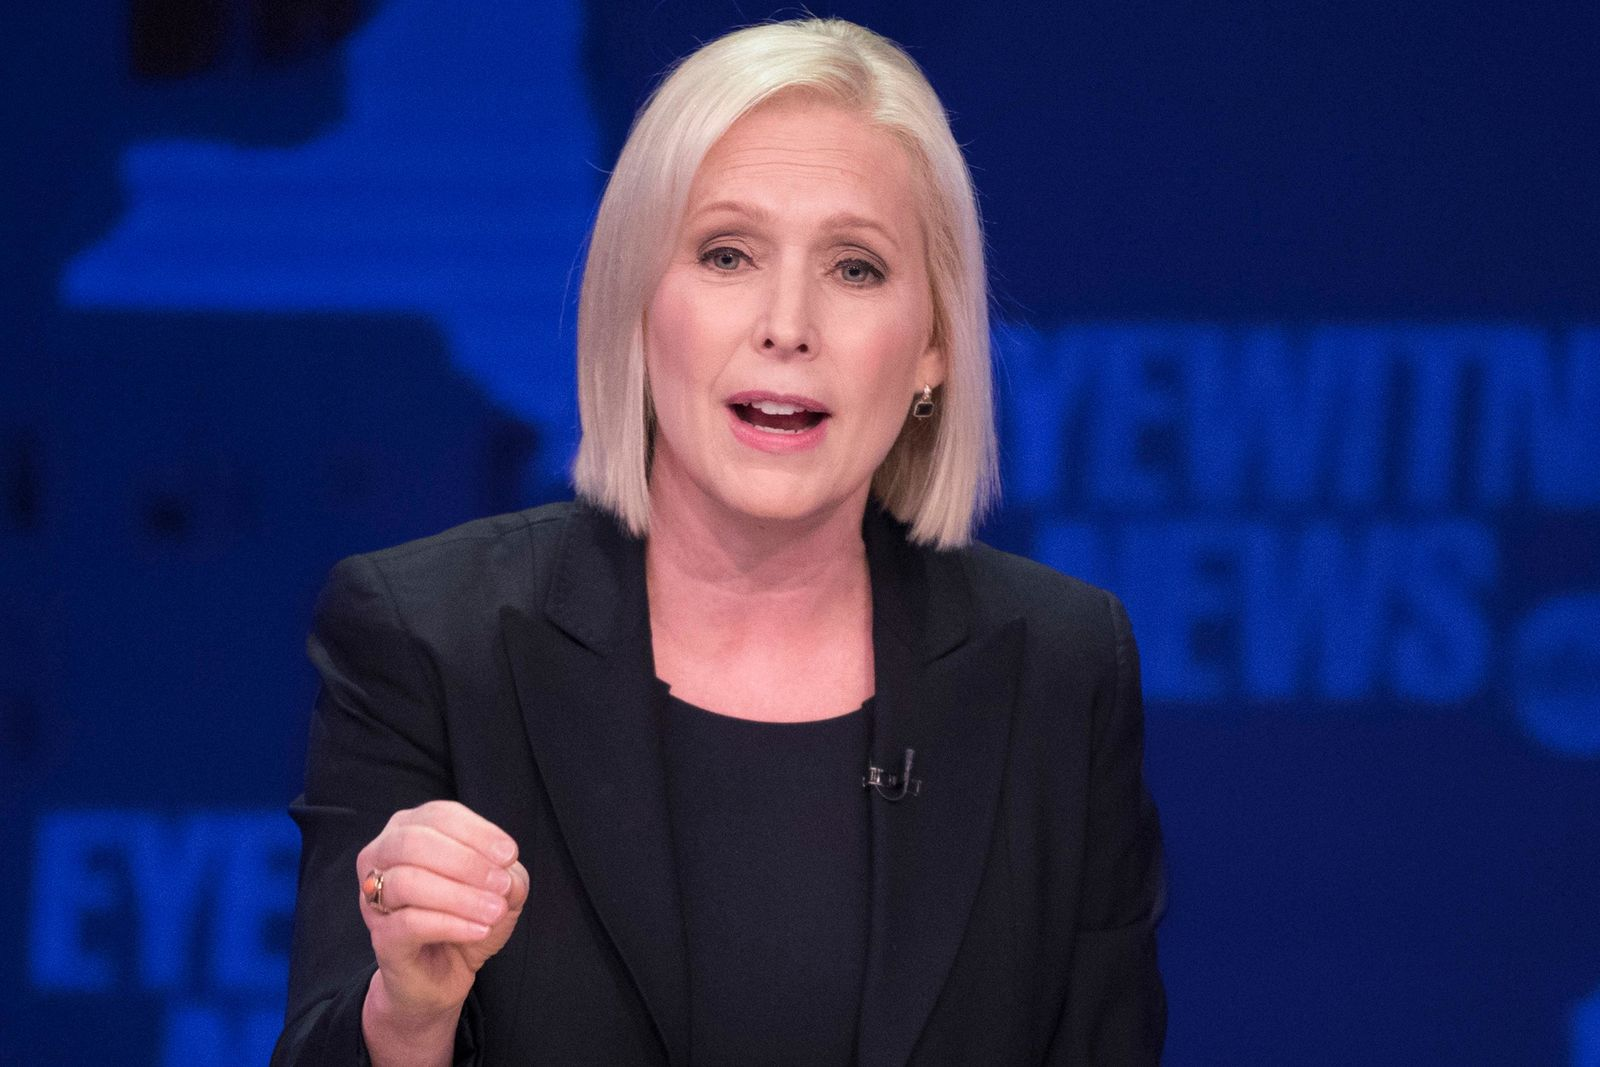 FILE - In this Oct. 25, 2018 file photo, Sen. Kirsten Gillibrand, D-N.Y., speaks during the New York Senate debate hosted by WABC-TV, in New York. (AP Photo/Mary Altaffer, Pool, File)